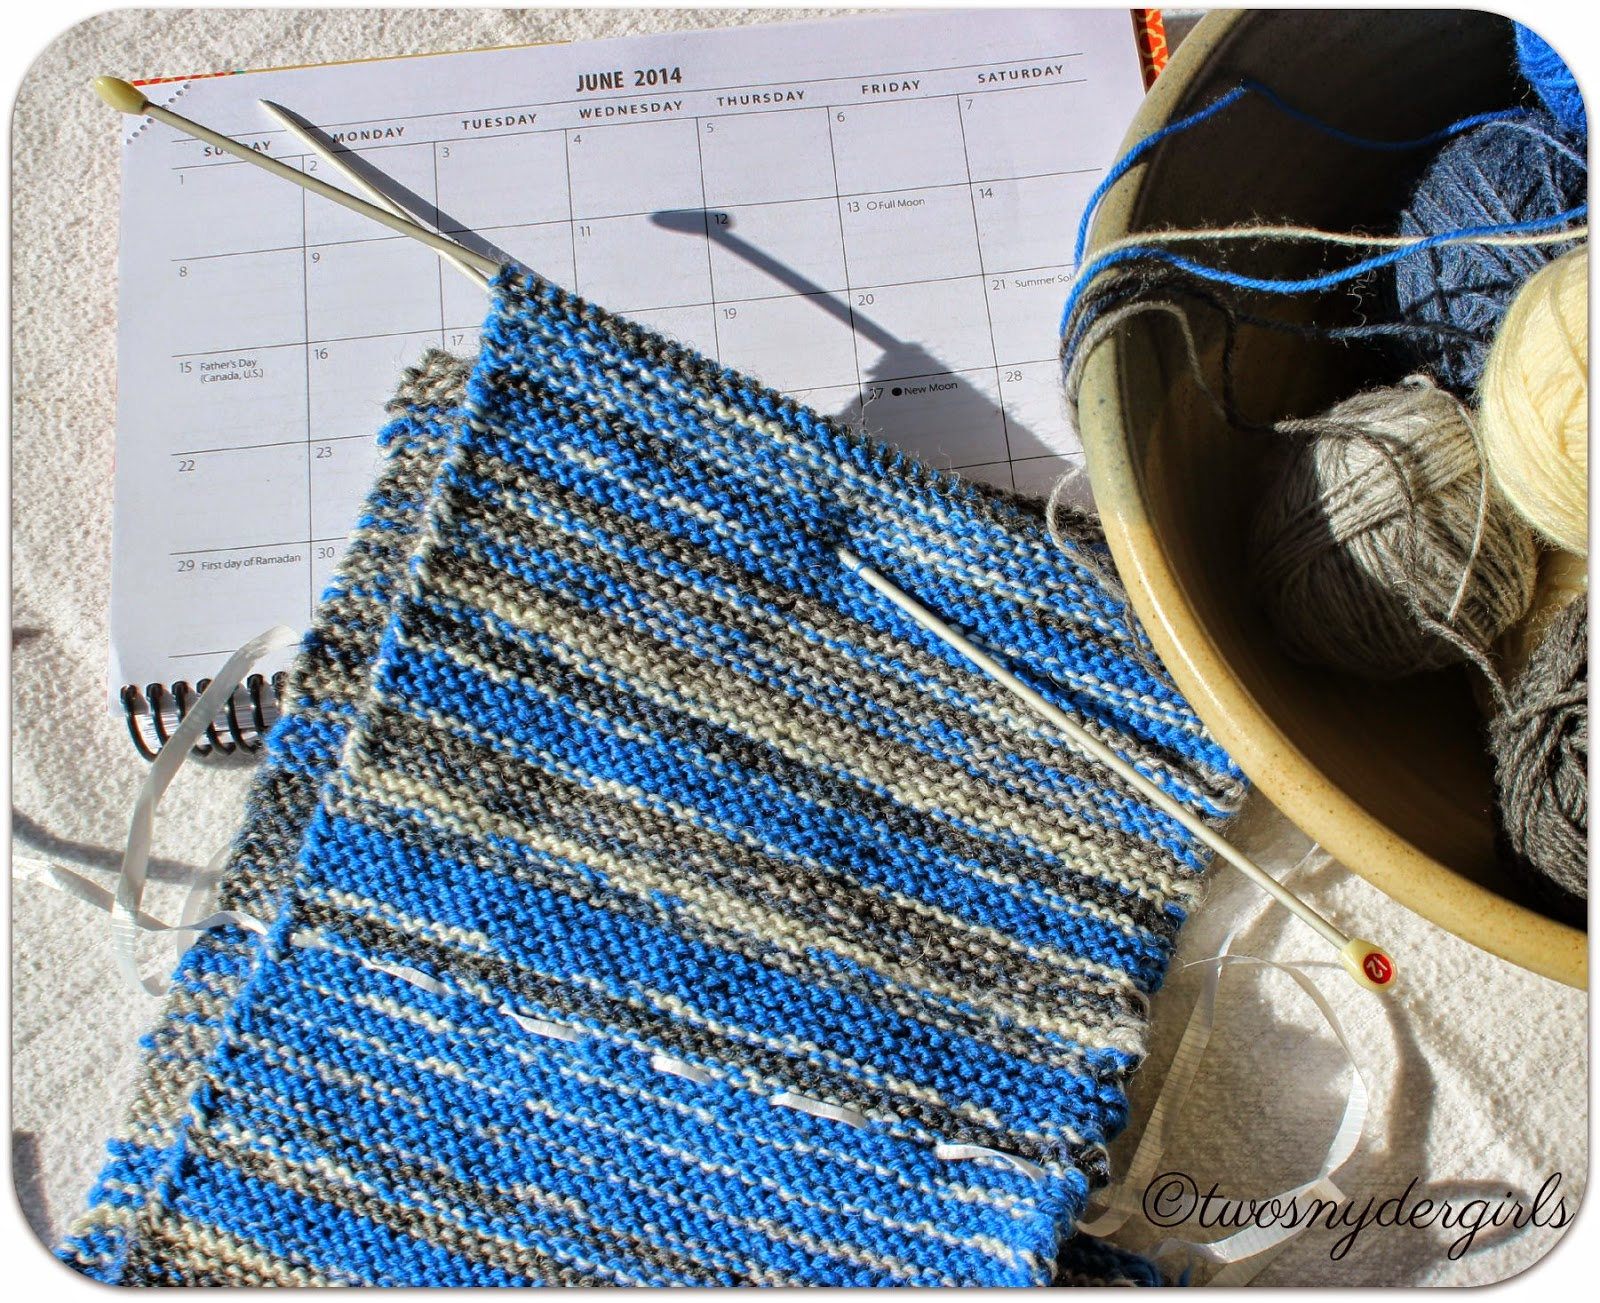 June 2014 a calendar and bowl of yarn